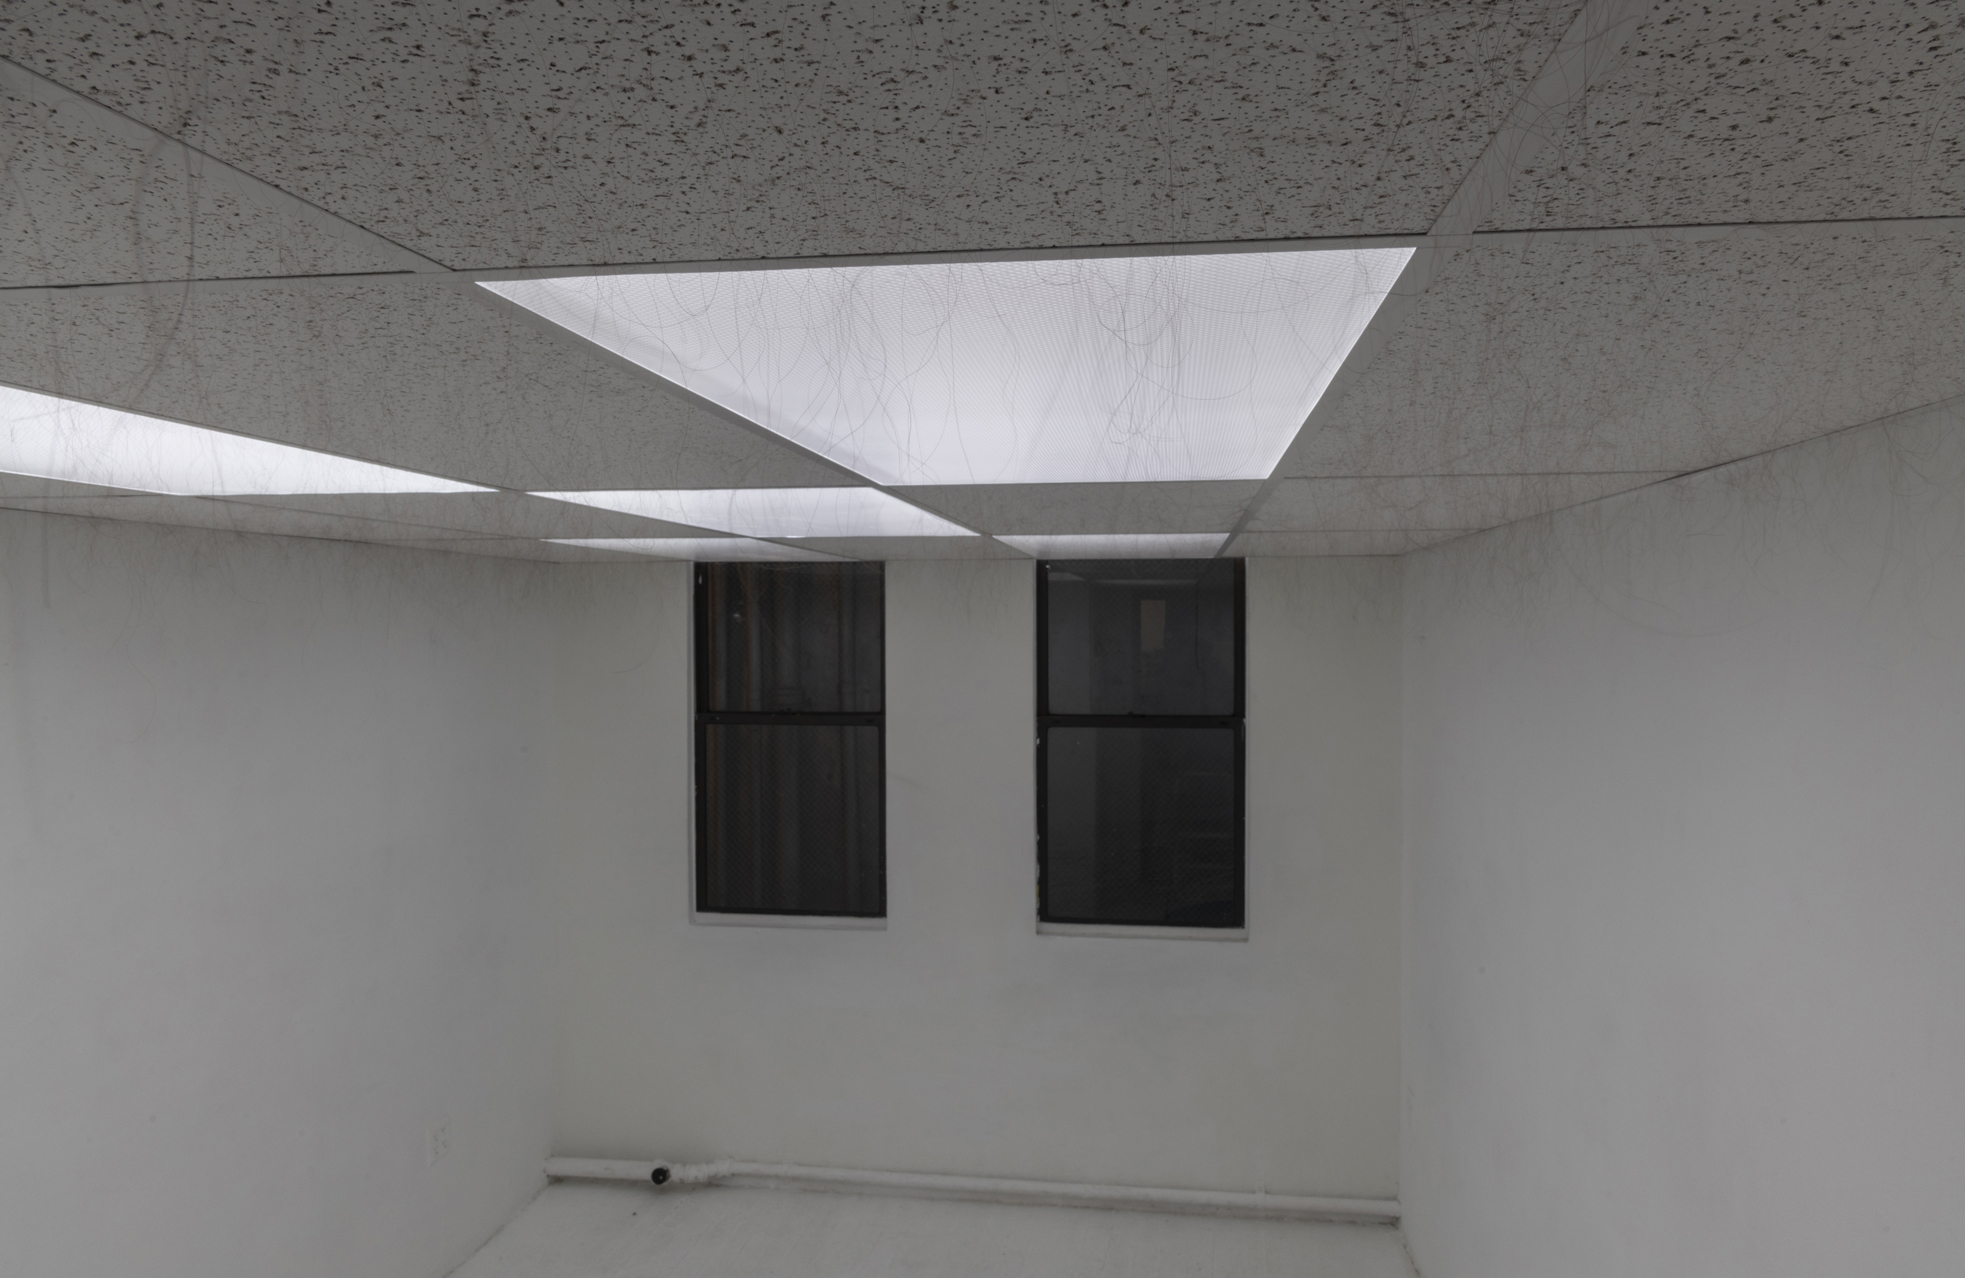 Anagen , 2018–19. Armstrong ceiling tiles in dropped ceiling in gallery, human hair, glue. 86 x 117 x 203 inches (approximately).